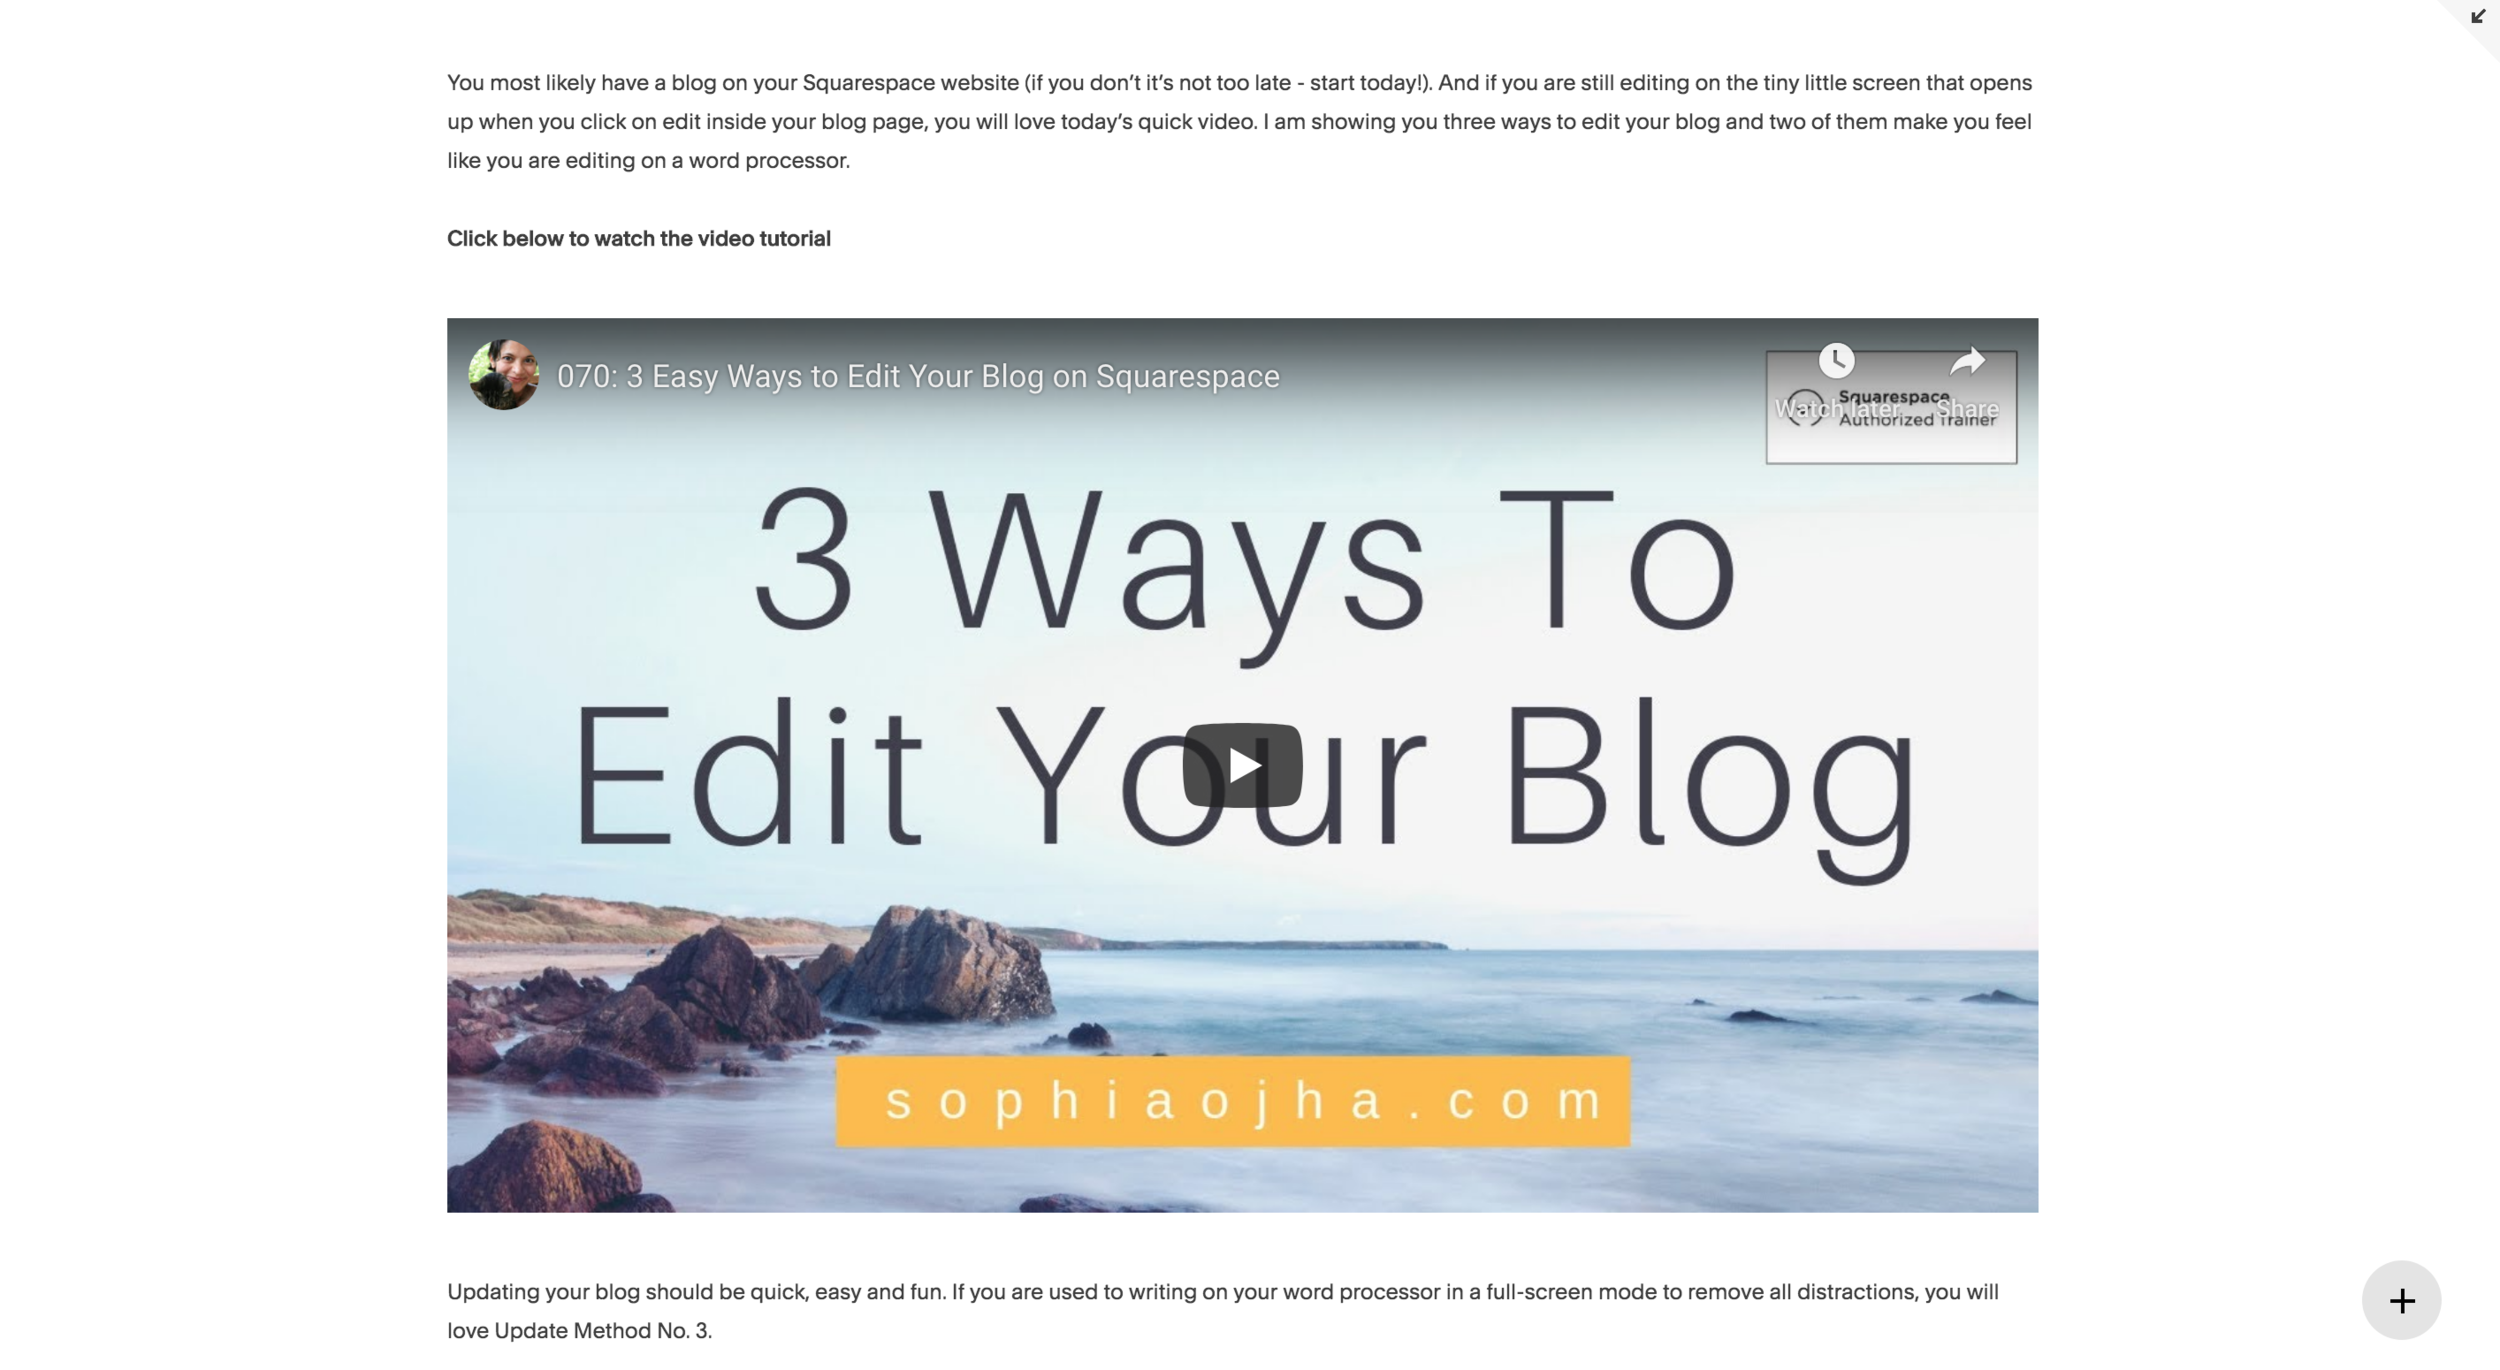 Edit your blog in three easy ways on Squarespace